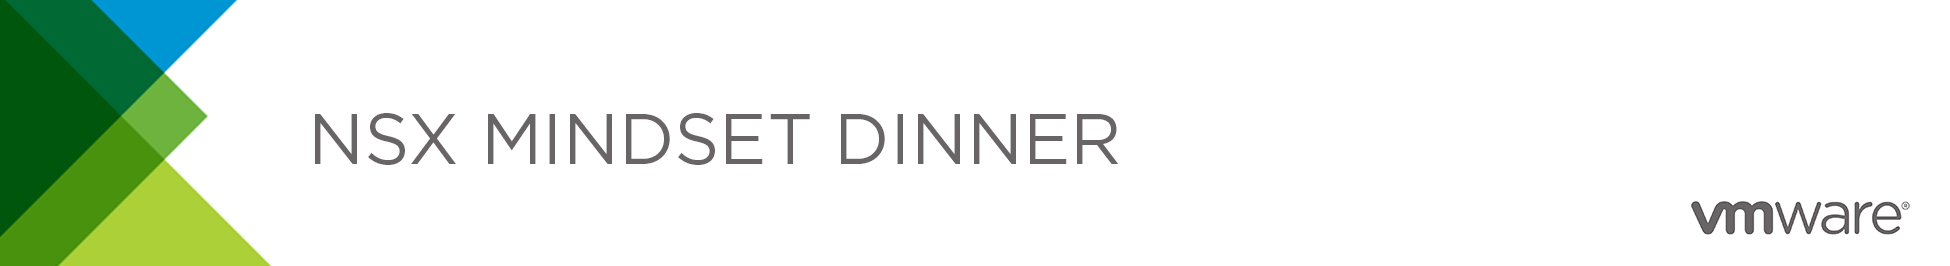 Las Vegas, NV - NSX Mindset Dinner - November 28